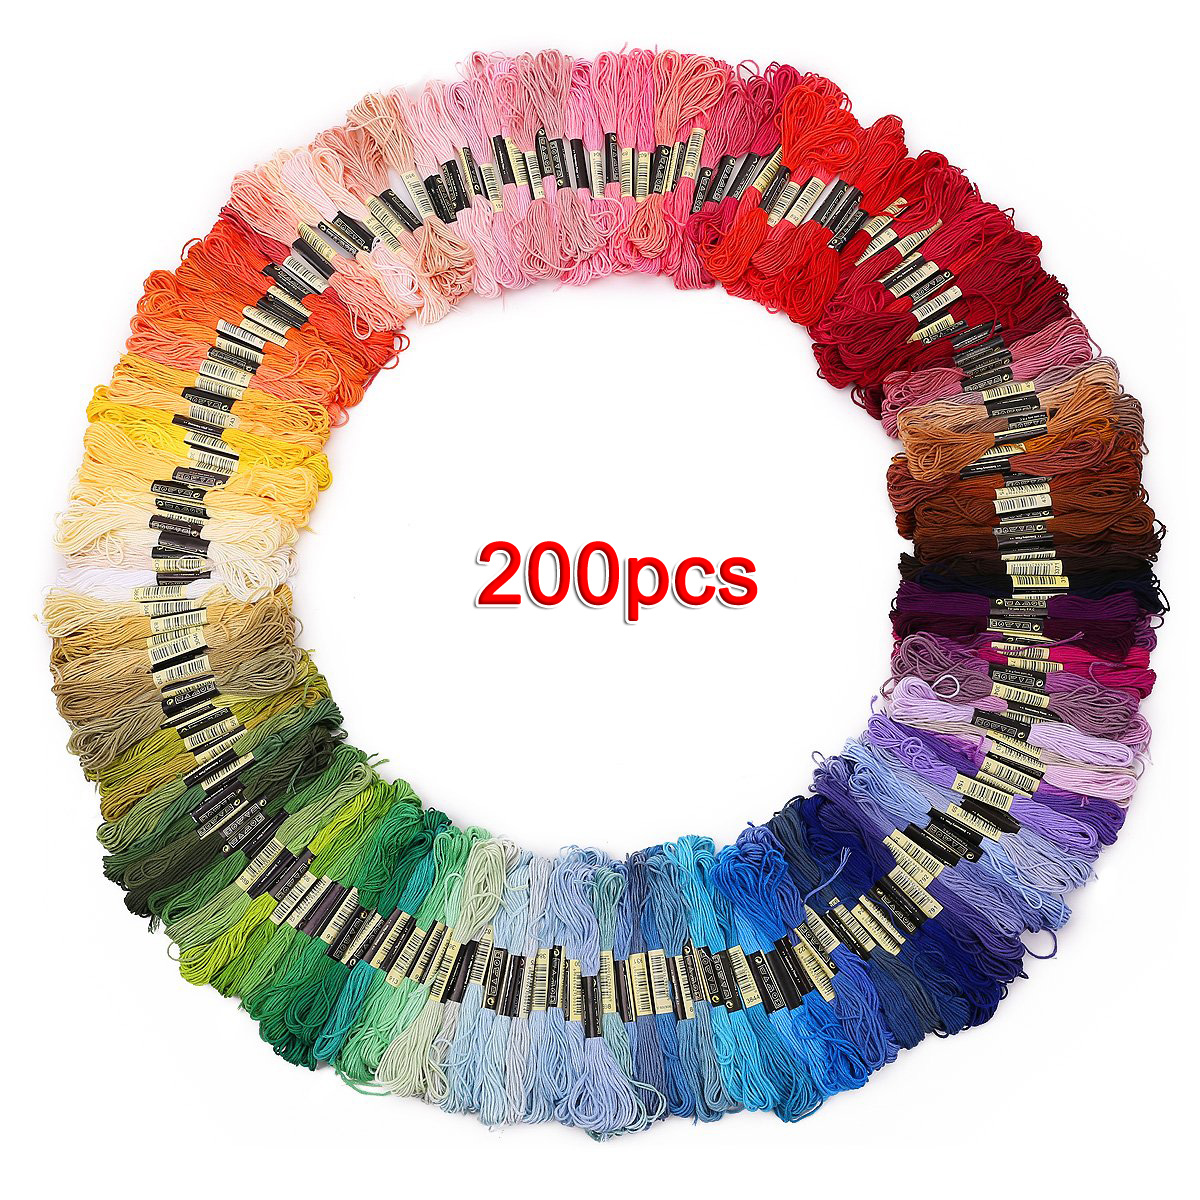 200 Skeins Of Multicolored Yarn For Cross Needle Embroidery Crocheting